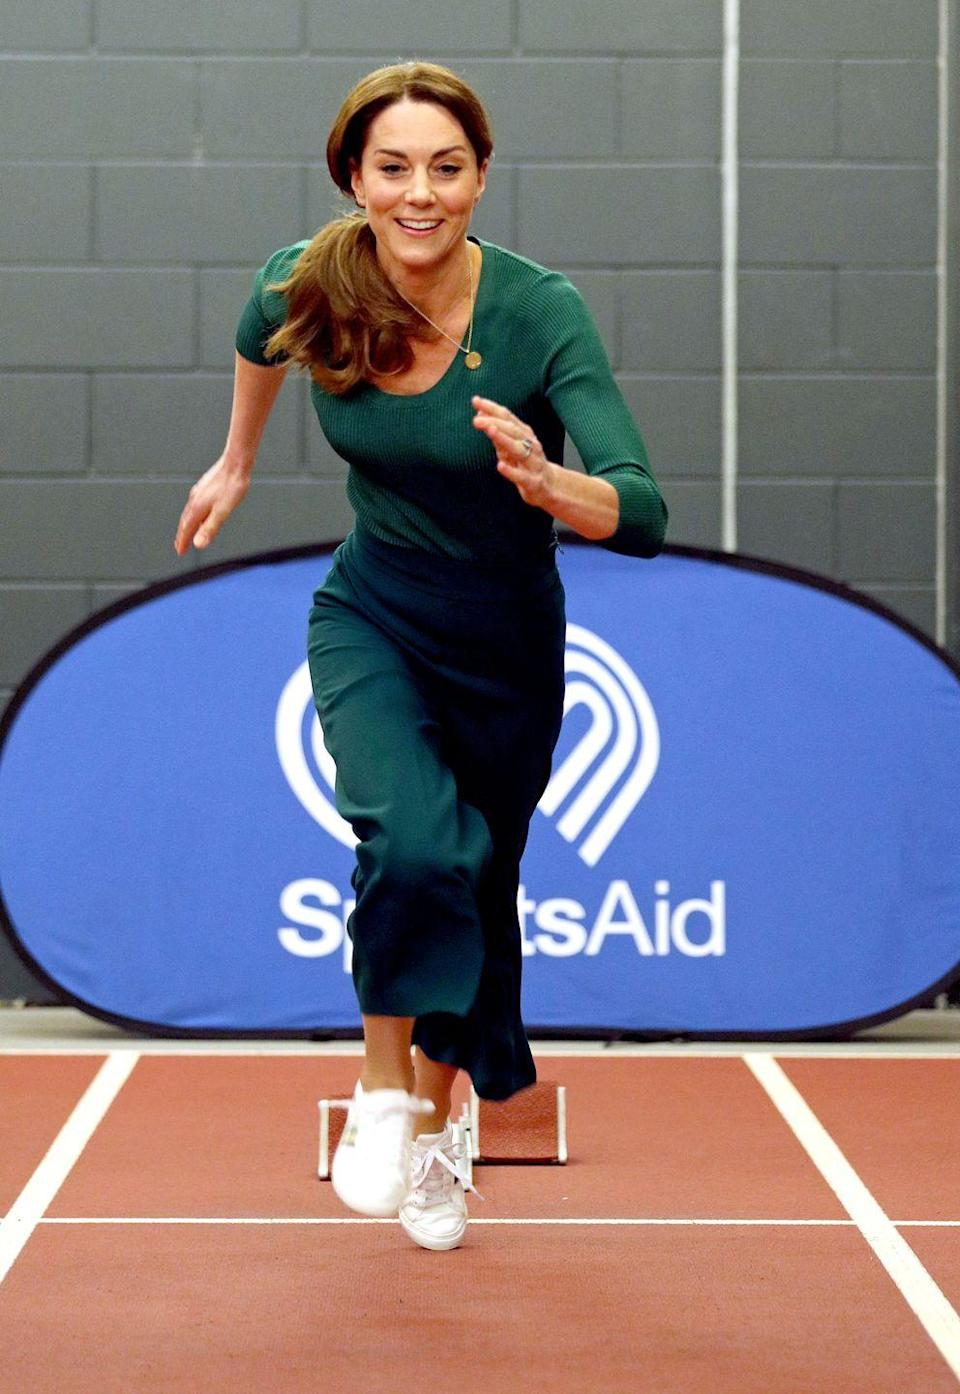 """<p>The Duchess is on the run! Kate wore an <a href=""""https://www.townandcountrymag.com/society/tradition/a31112240/kate-middleton-green-athleisure-look-sportsaid-photos/"""" rel=""""nofollow noopener"""" target=""""_blank"""" data-ylk=""""slk:all-green athleisure look"""" class=""""link rapid-noclick-resp"""">all-green athleisure look</a> to a SportsAid event at the London Stadium. She paired the outfit with <a href=""""https://www.womenshealthmag.com/uk/gym-wear/a36002134/kate-middleton-marks-spencer-trainers-new-colours/"""" rel=""""nofollow noopener"""" target=""""_blank"""" data-ylk=""""slk:Marks & Spencer striped trainers"""" class=""""link rapid-noclick-resp"""">Marks & Spencer striped trainers</a> and tried her hand at both racing on the track and taekwondo. </p>"""